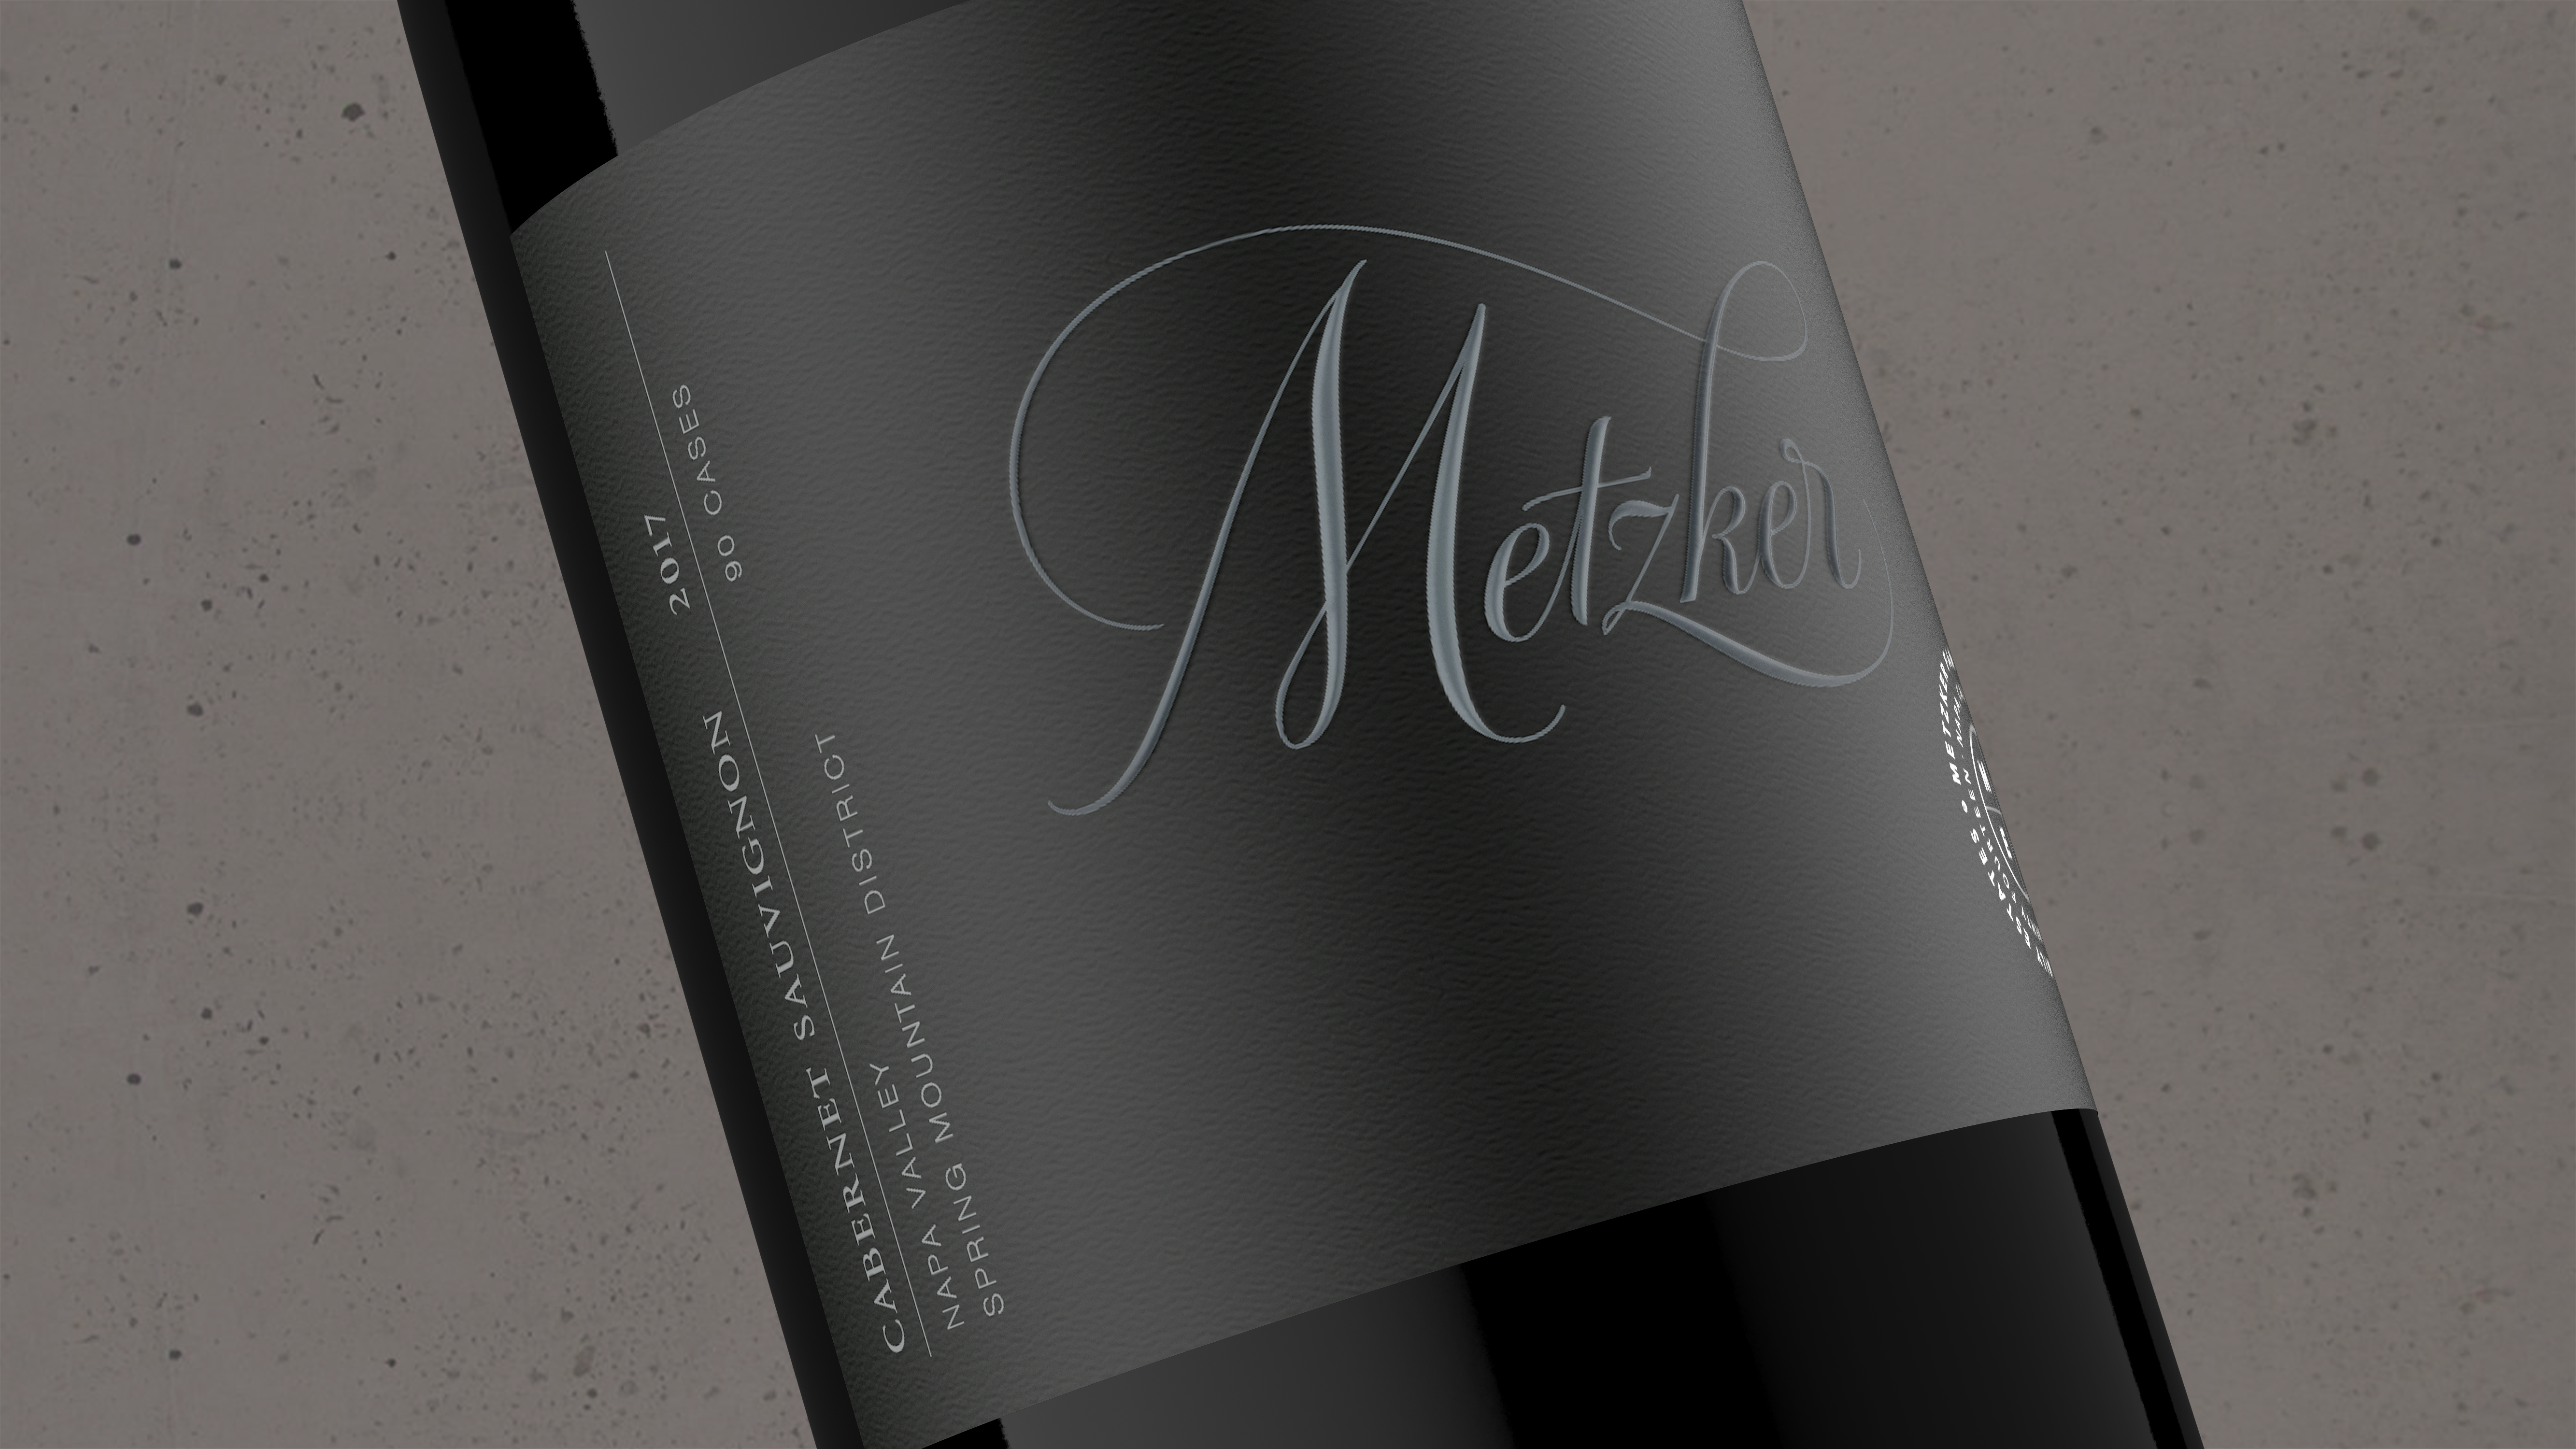 2017 Metzker Cabernet Sauvignon Spring Mountain District - Metzker Family Estates Wines